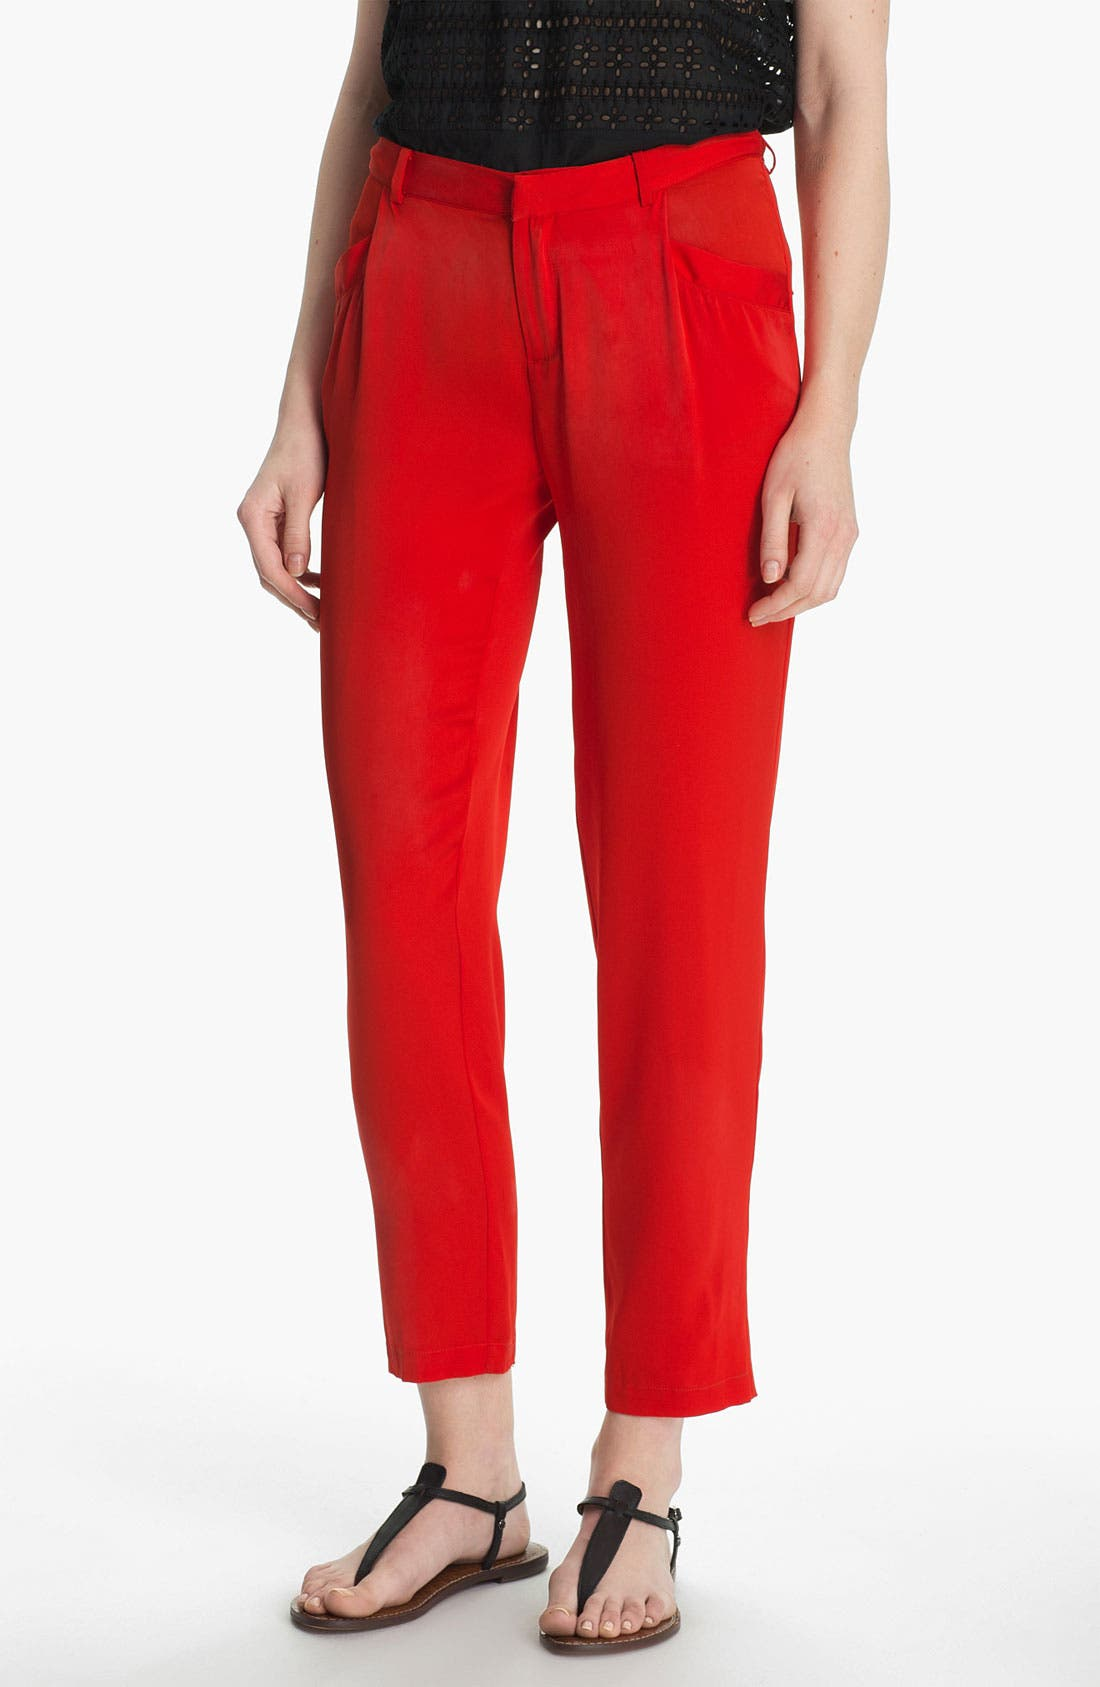 Alternate Image 1 Selected - Joie 'Davidson' Crop Stretch Silk Pants